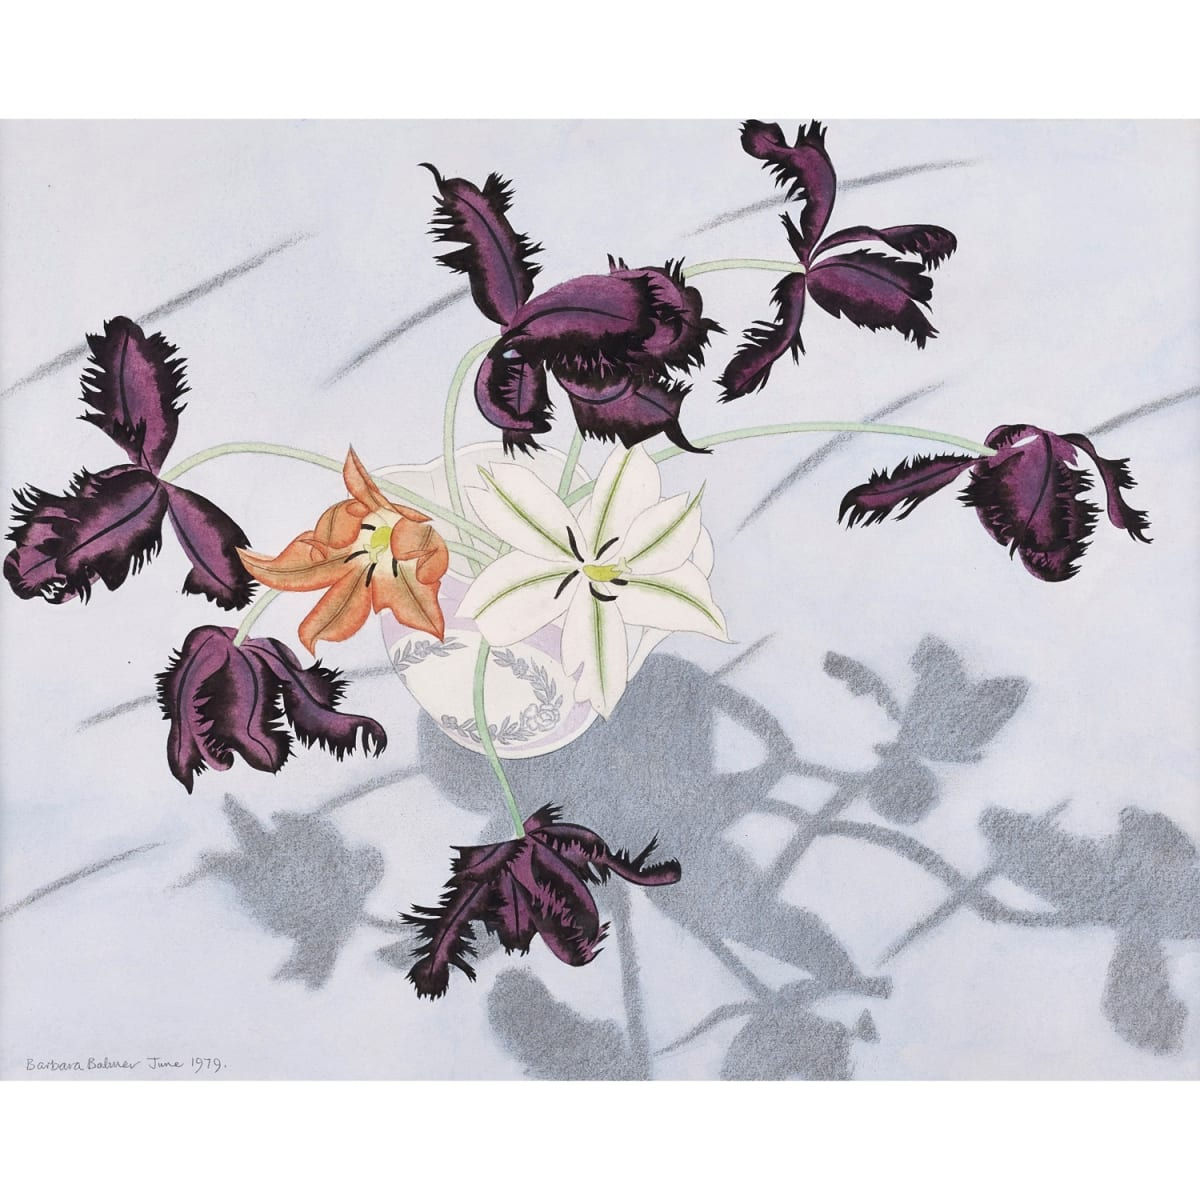 Barbara Balmer Black Parrot Tulips, 1979 signed and dated June 1979 pencil and watercolour 16 1/2 x 21 inches